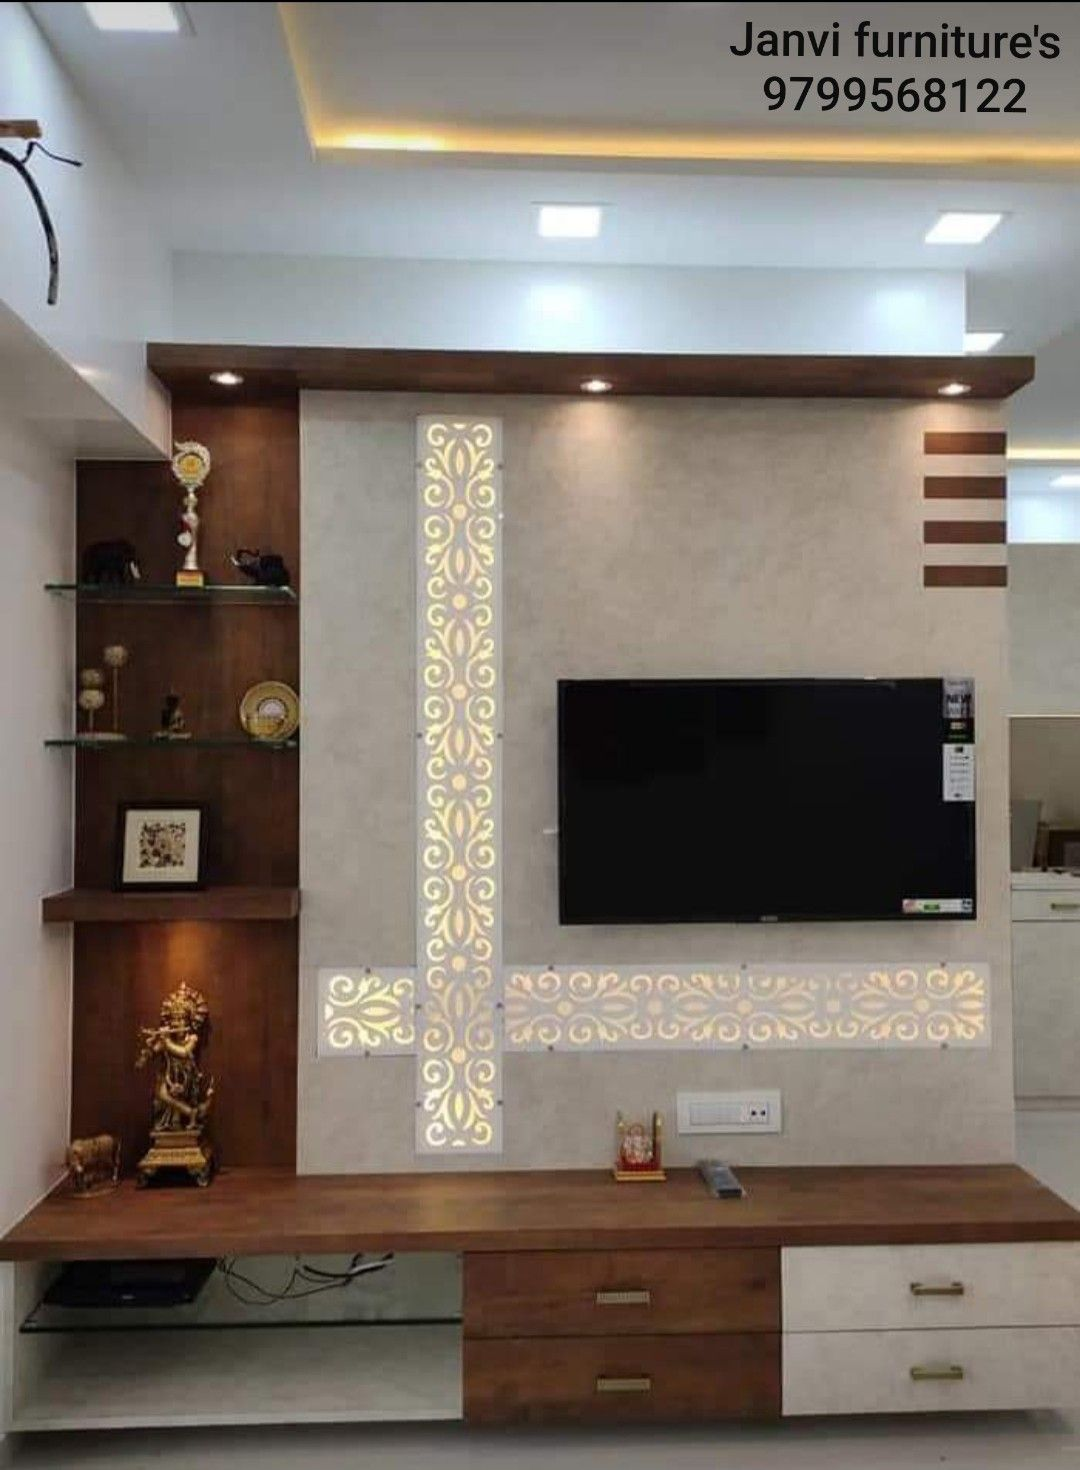 Pin By Mallikarjuna On T V Cabinet: Pin By Janvi Furniture's Kekeri 97995 On Janvi Furniture's